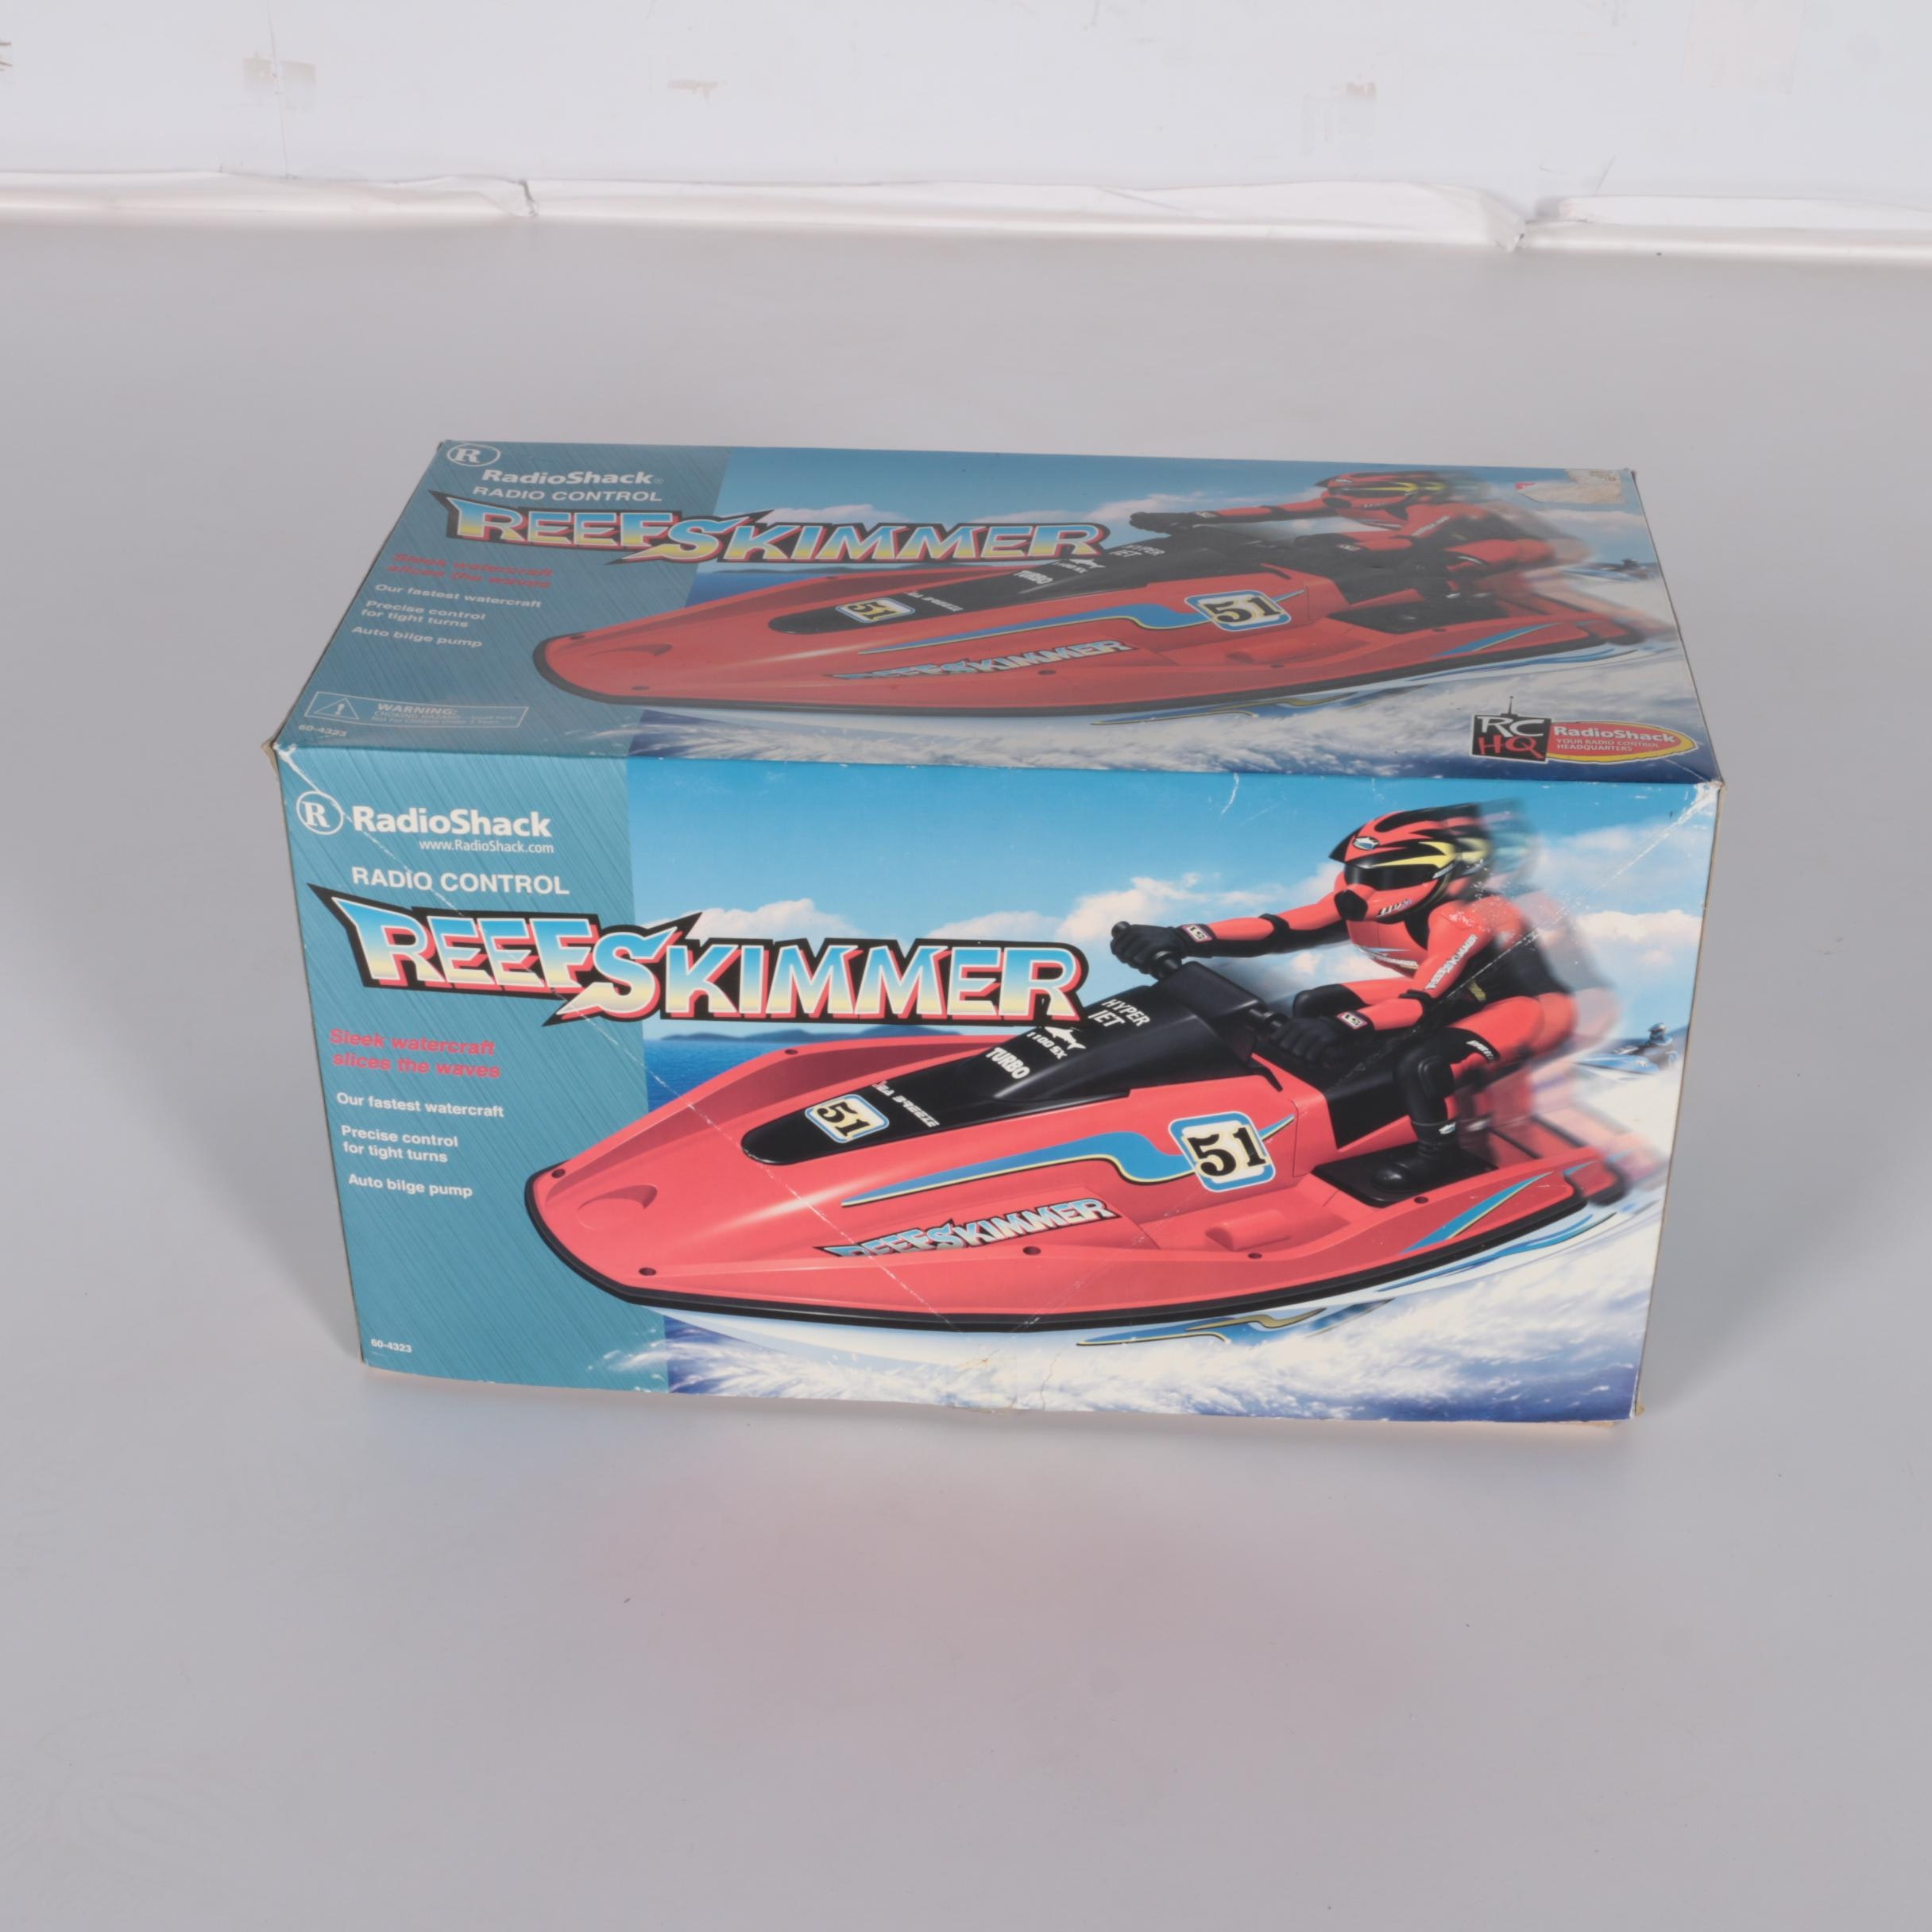 Radio Shack Reef Skimmer Remote Control Personal Watercraft in Box